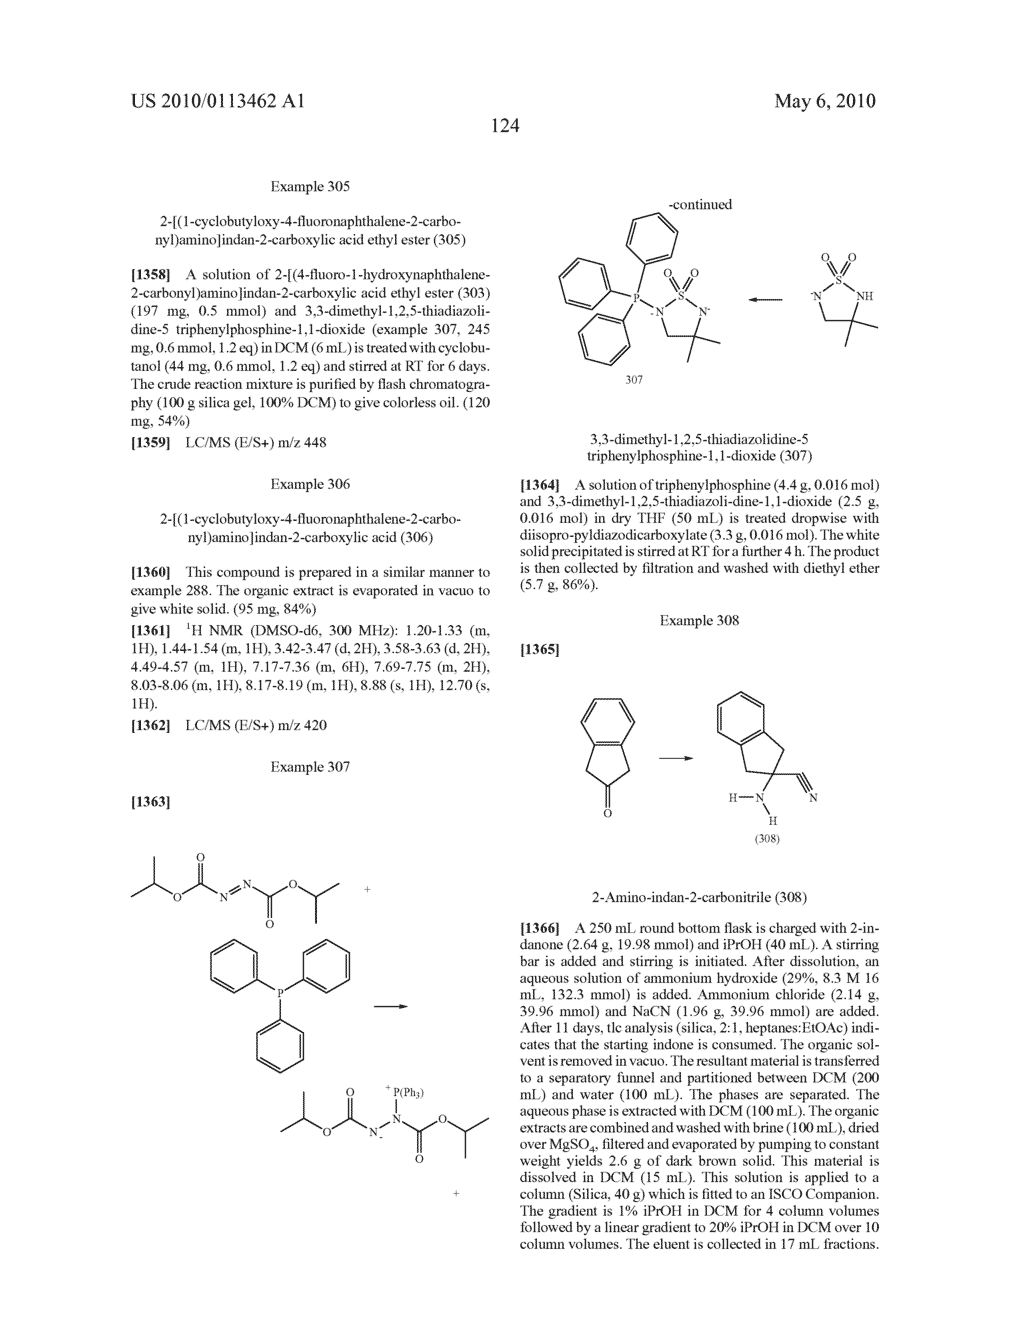 SUBSTITUTED BENZOYLAMINO-INDAN-2-CARBOXYLIC ACIDS AND RELATED COMPOUNDS - diagram, schematic, and image 125